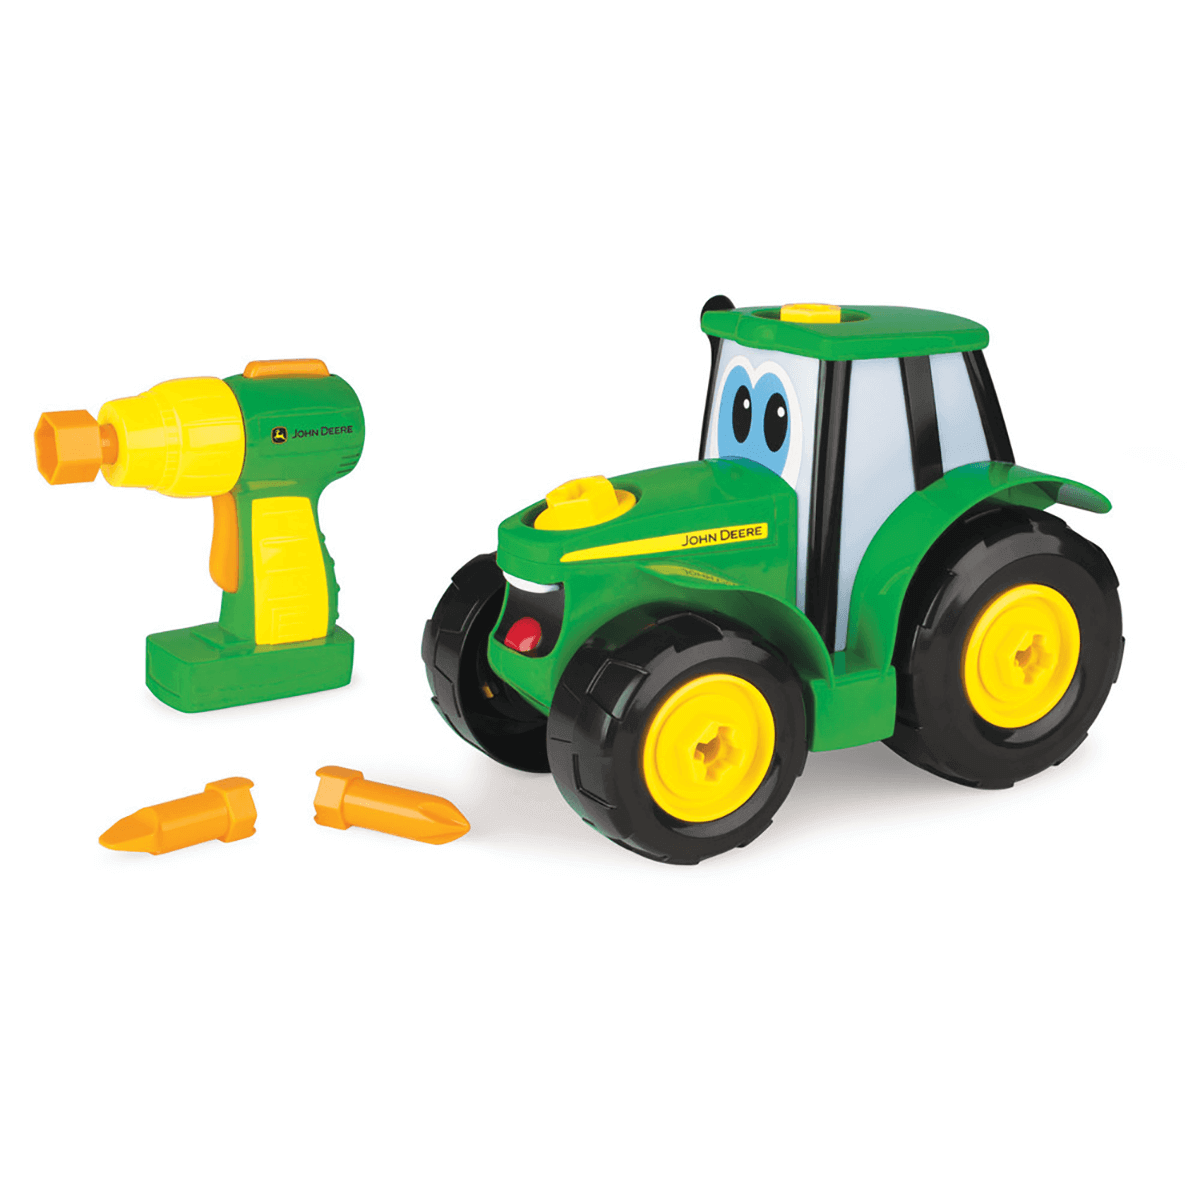 Tomy John Deere Build A Johnny Tractor from Early Learning Center